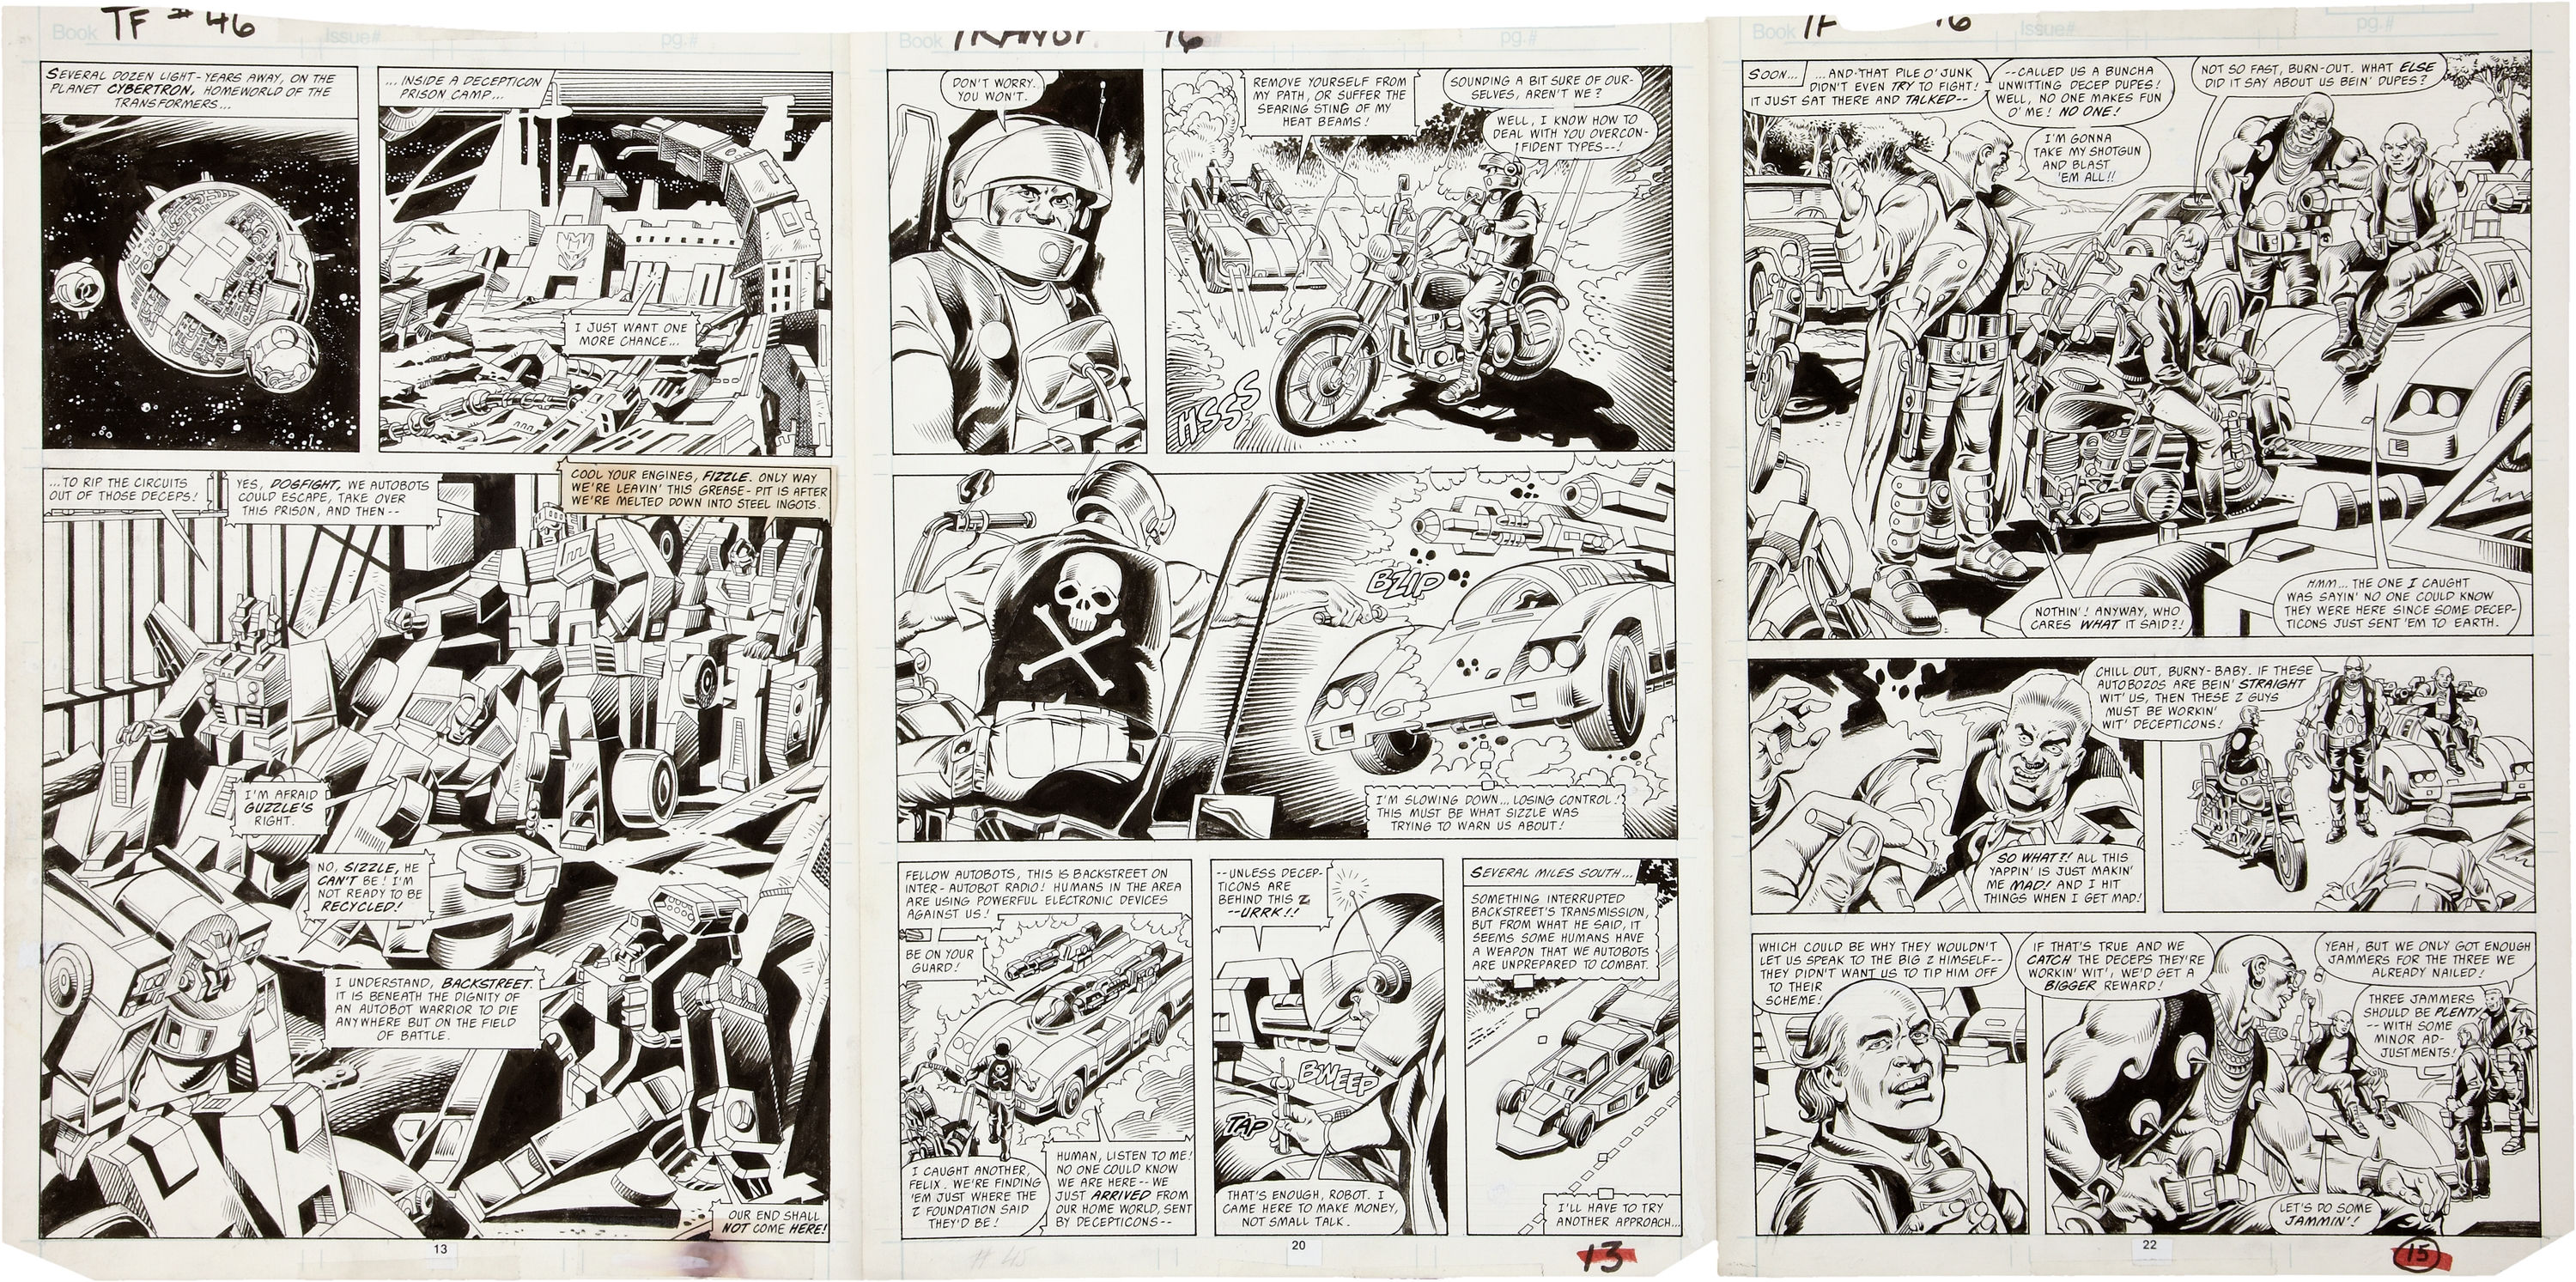 Be Nelson Yomtov! (Colorists, Tackle an Original Transformers Marvel Comics Page!)-jose-20delbo-20transformers-2046-20pages-2002.jpg